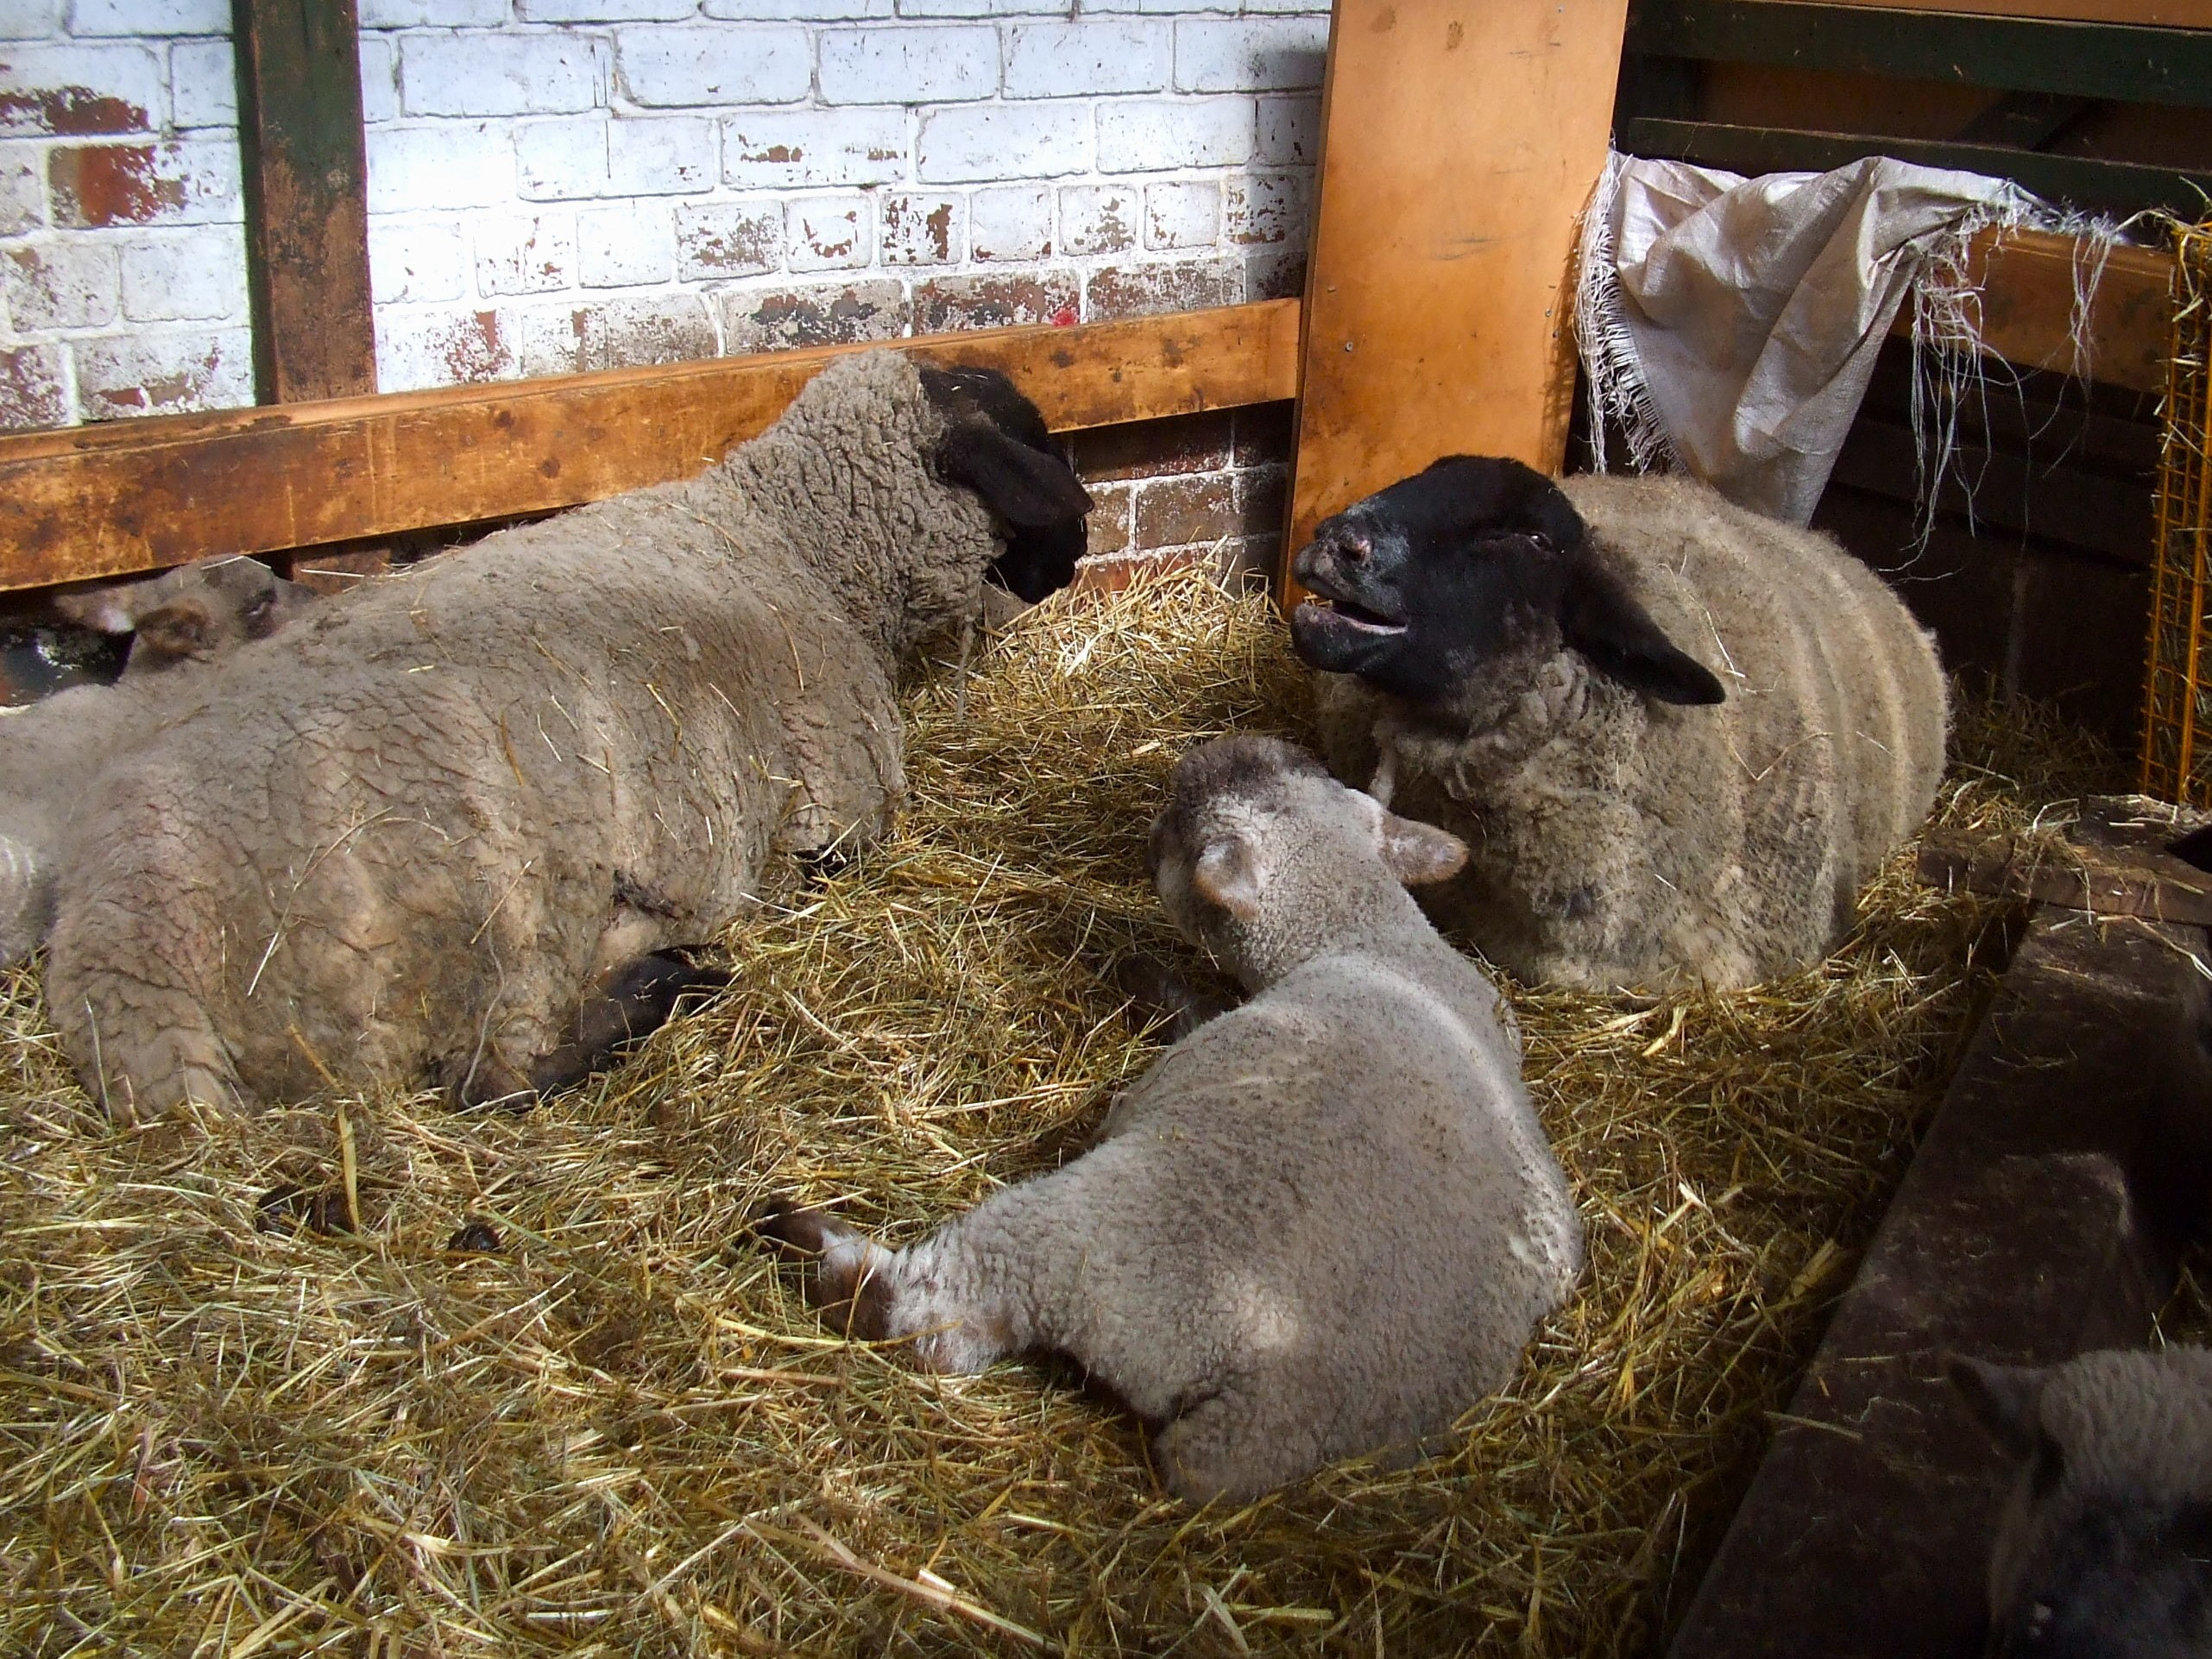 sheep at gorgie city farm